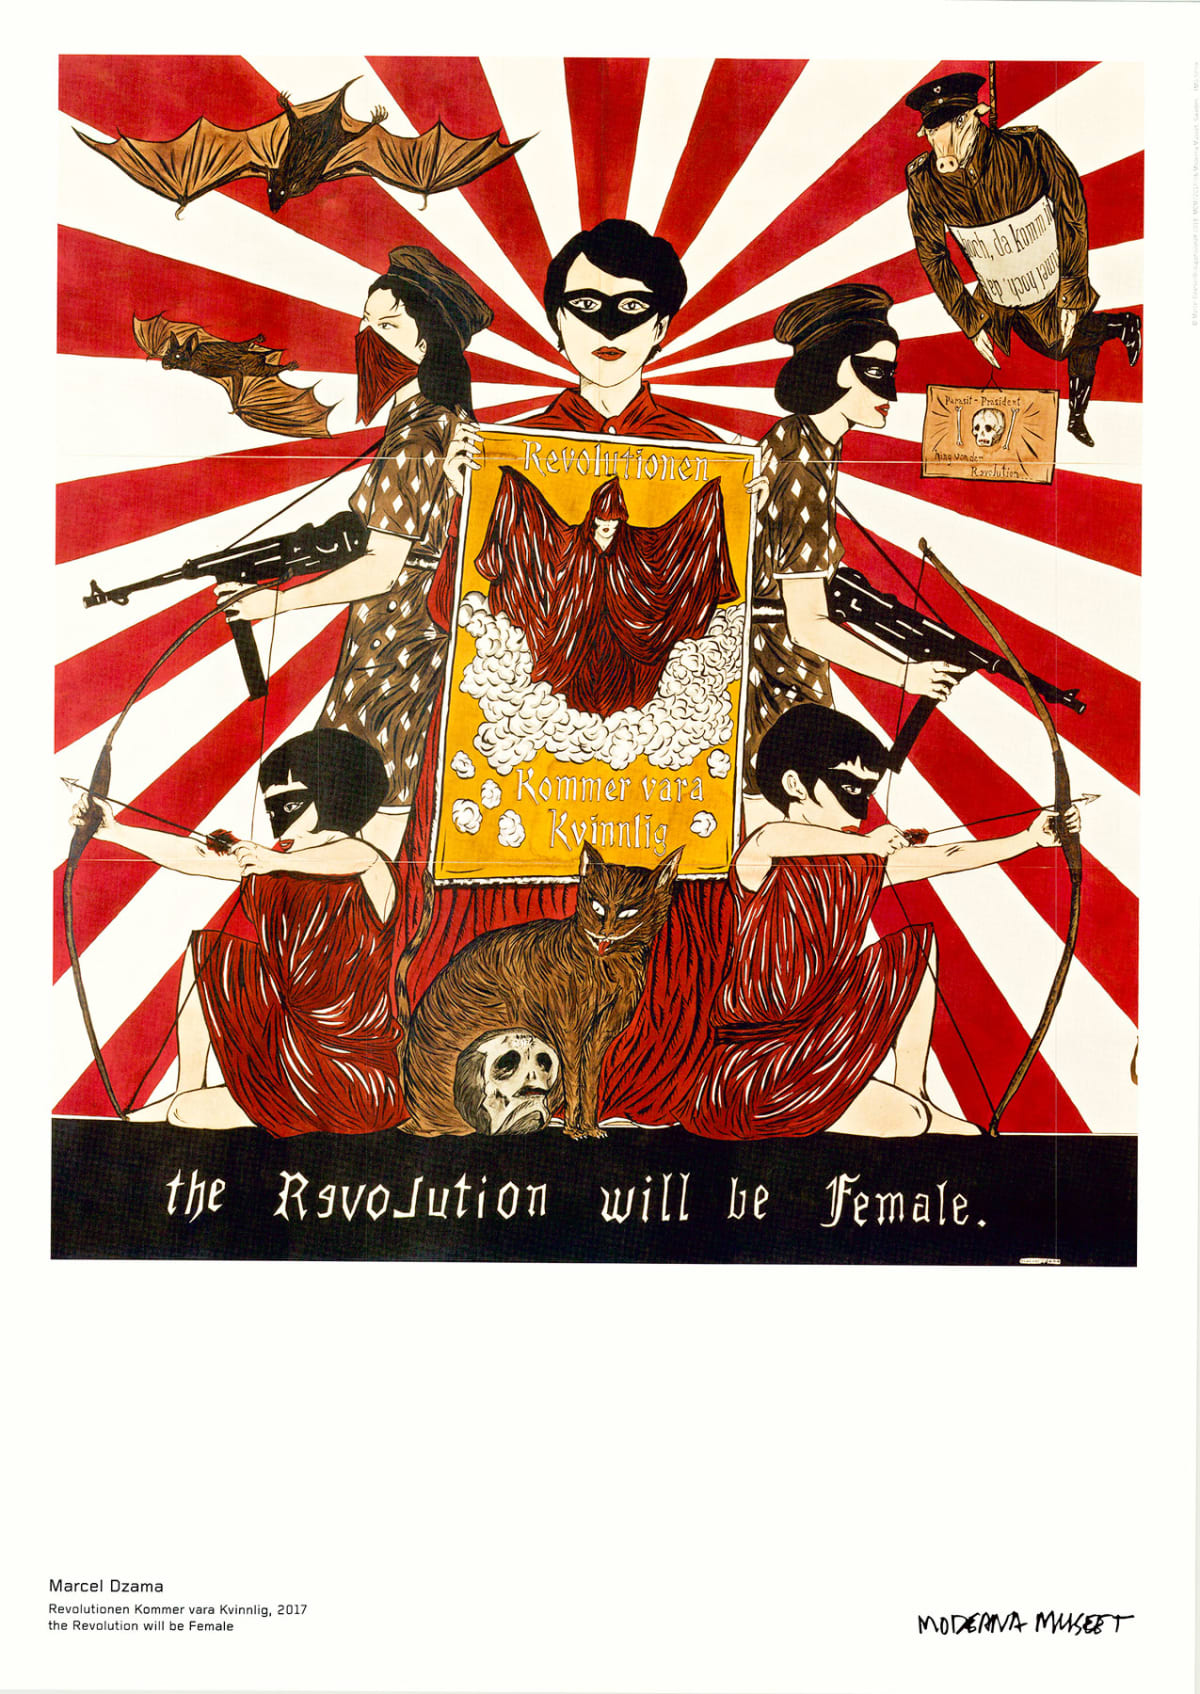 Marcel Dzama the Revolution will be Female, 2018 Poster 19 3/4 x 27 1/2 in 50 x 70 cm